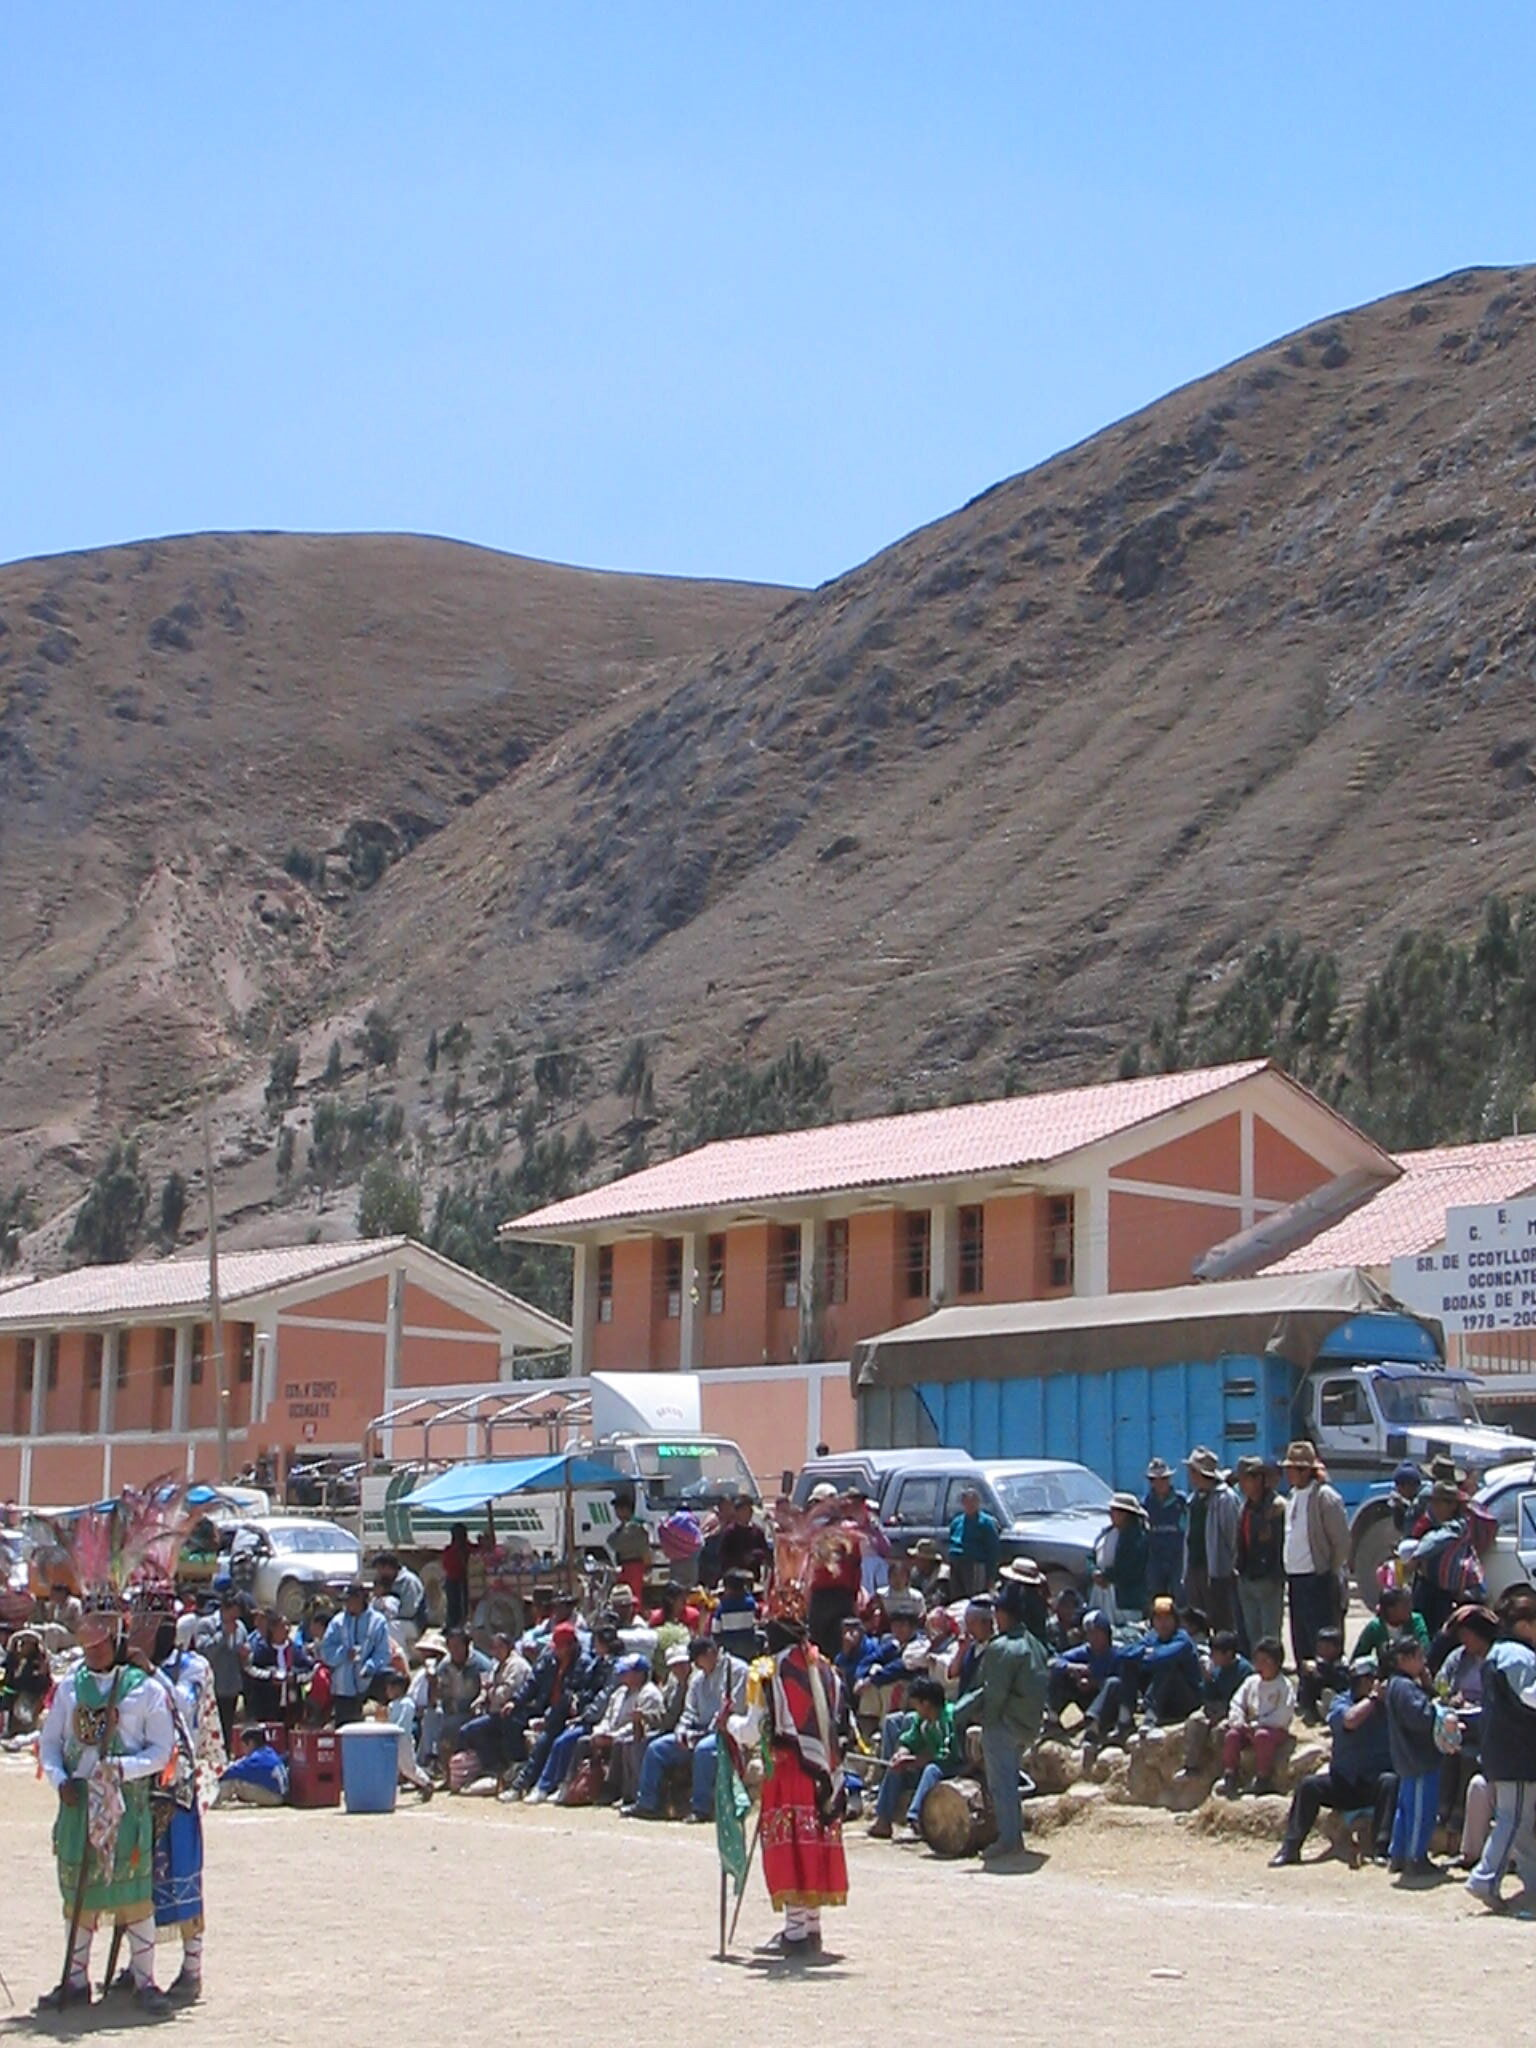 In the high Andean town of Ocongate, a dance troop of Qhapaq Ch'uncho prepares to board their truck to the Qoyllorit'i trail head further up the road. (September, 2003.)